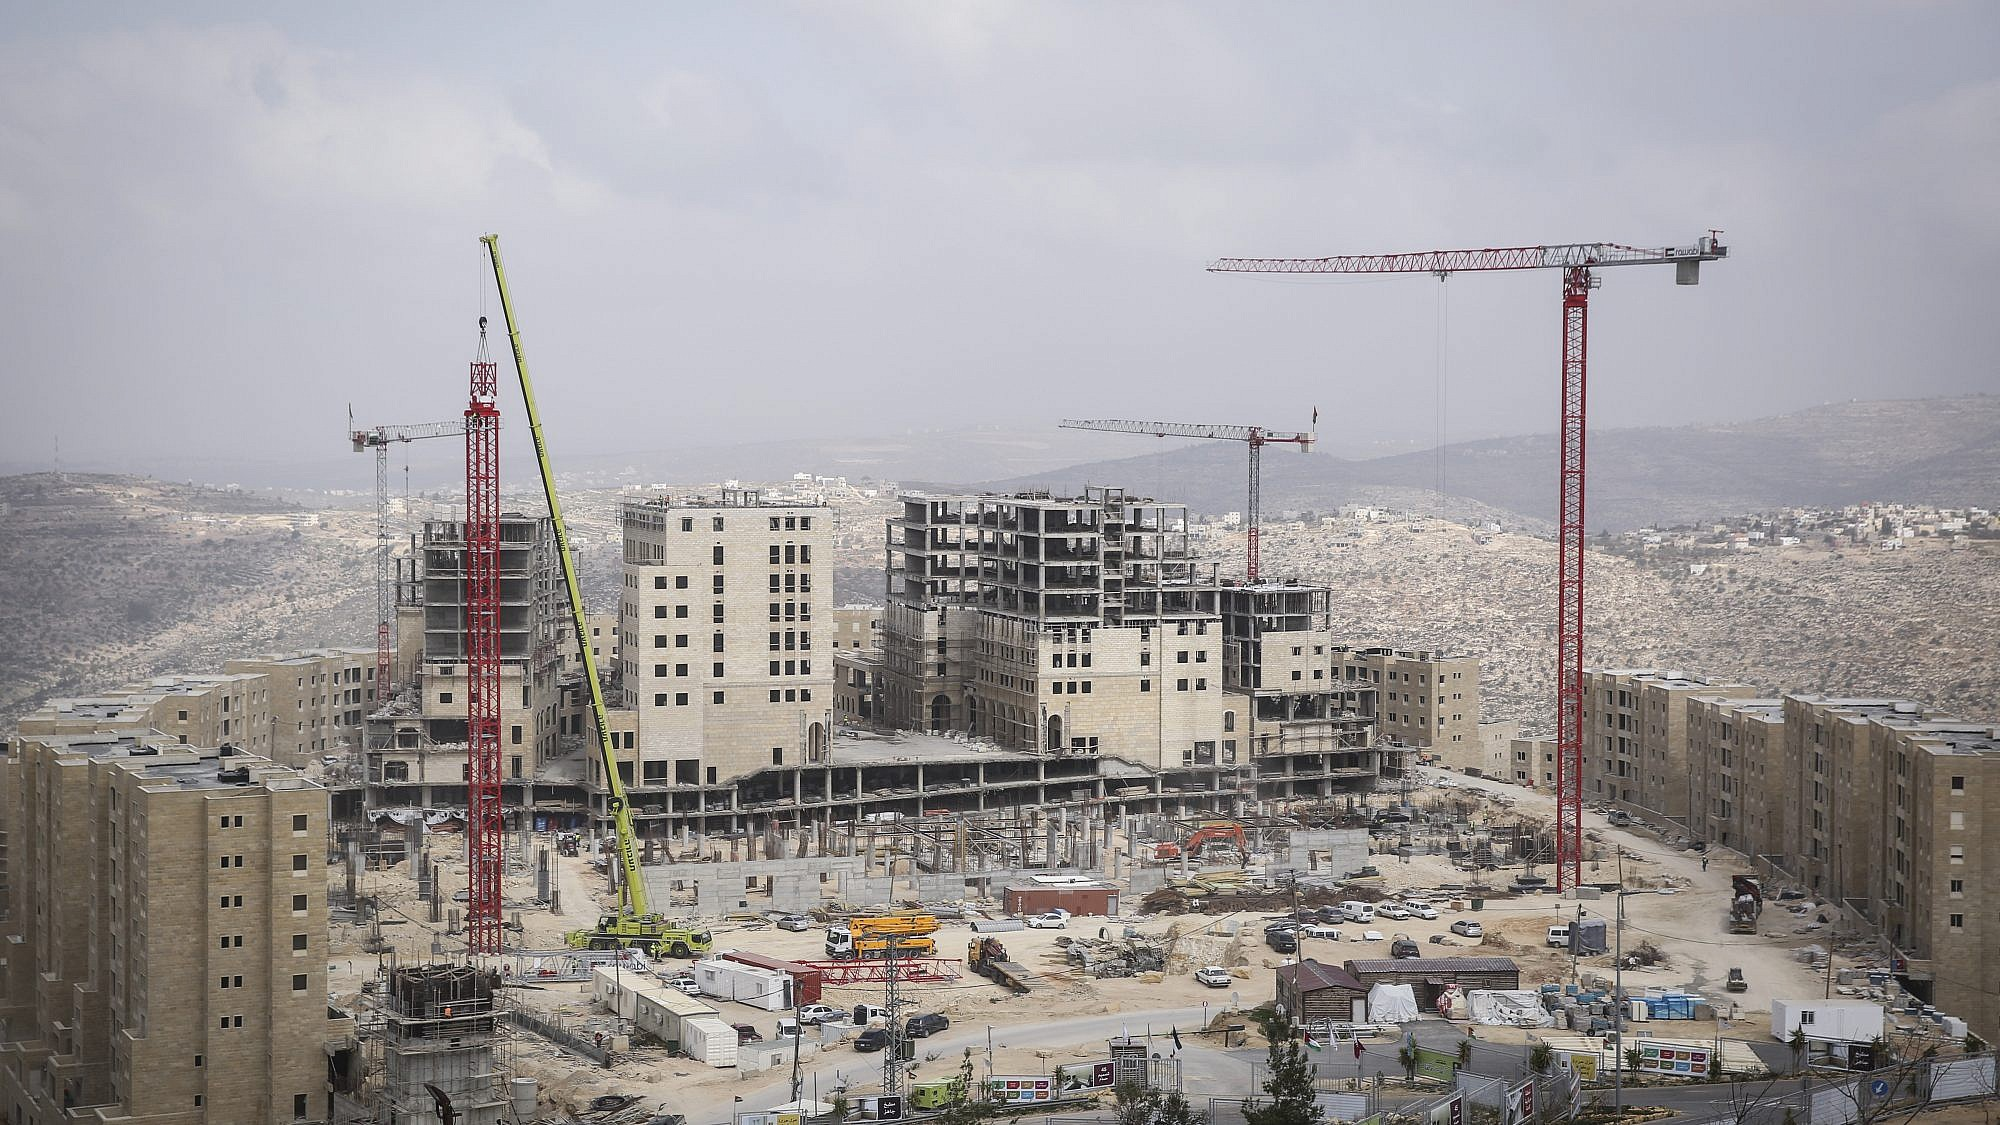 View of the construction of the new Palestinian city of Rawabi in Area A, on February 23, 2014. Photo by Hadas Parush/Flash 90.